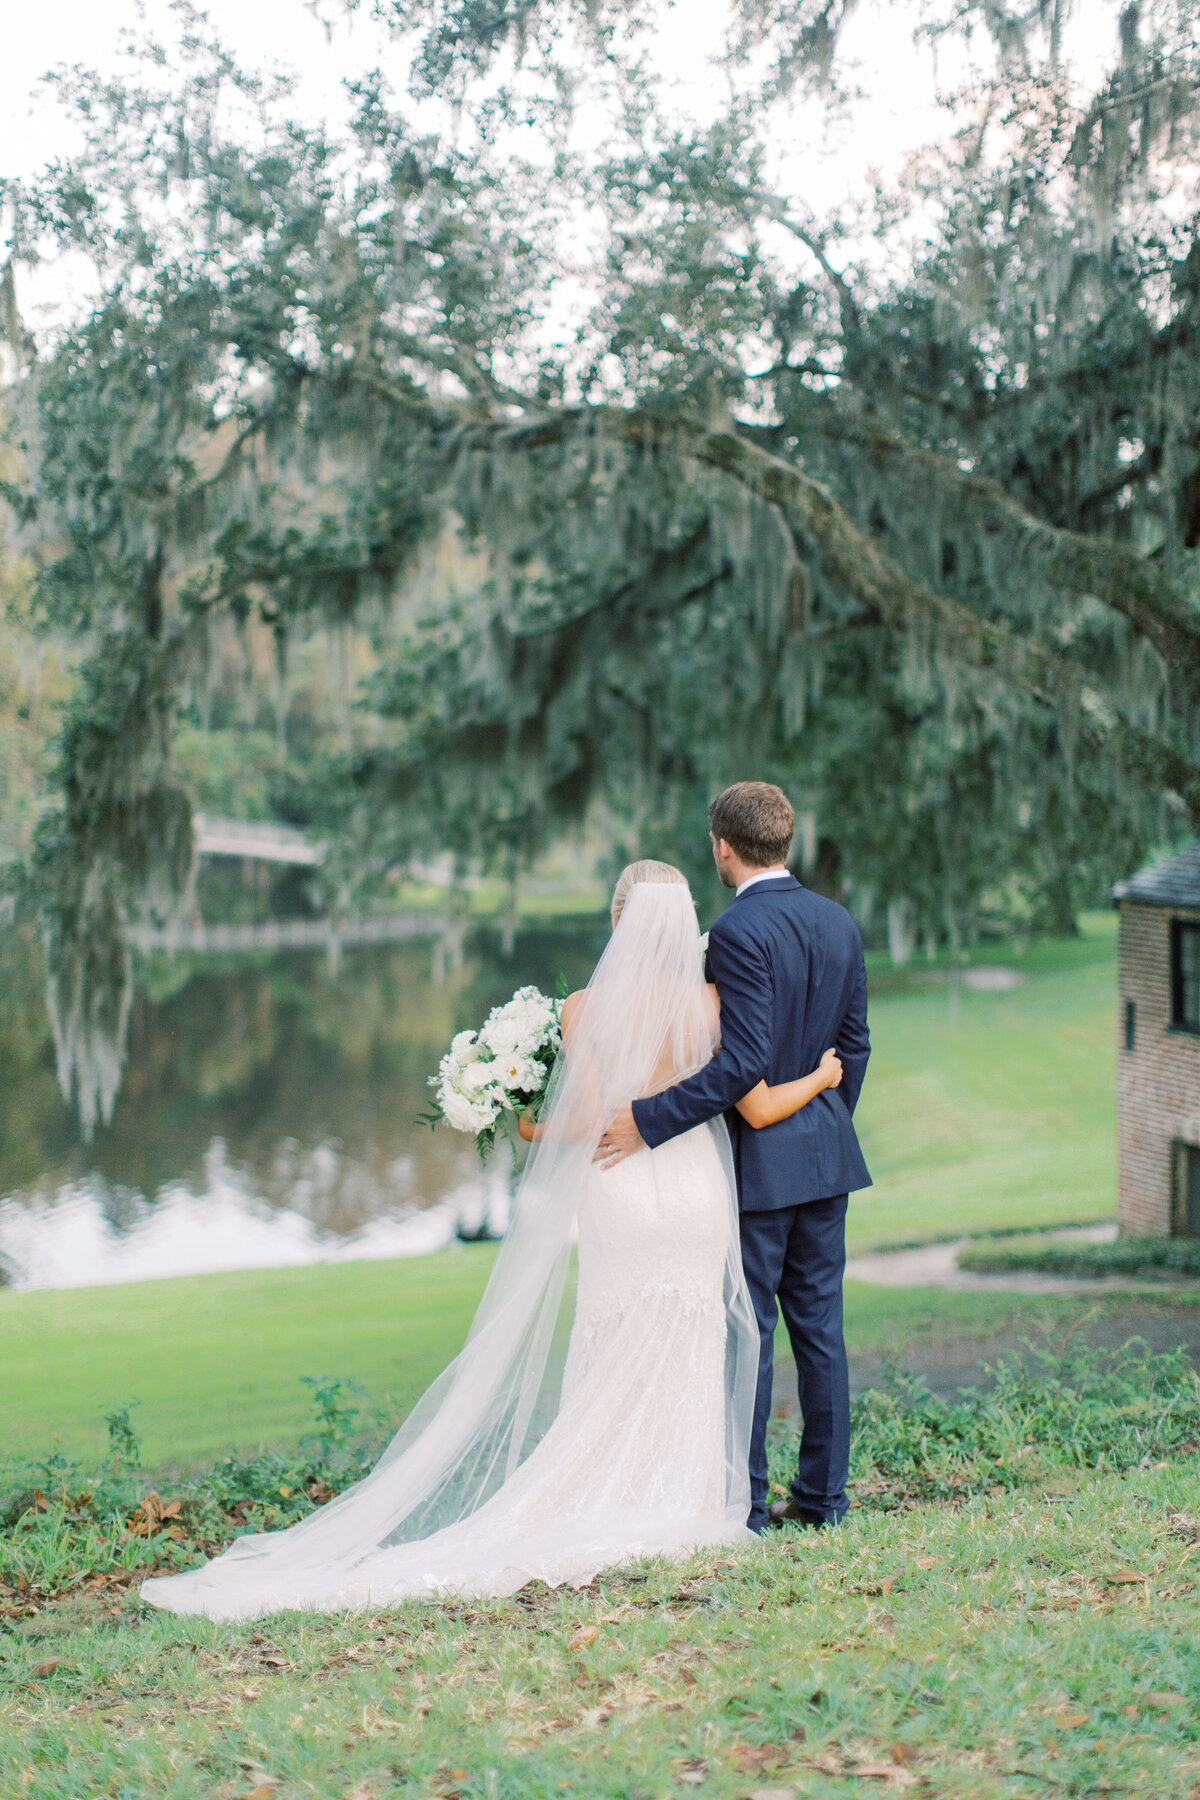 Melton_Wedding__Middleton_Place_Plantation_Charleston_South_Carolina_Jacksonville_Florida_Devon_Donnahoo_Photography__0814